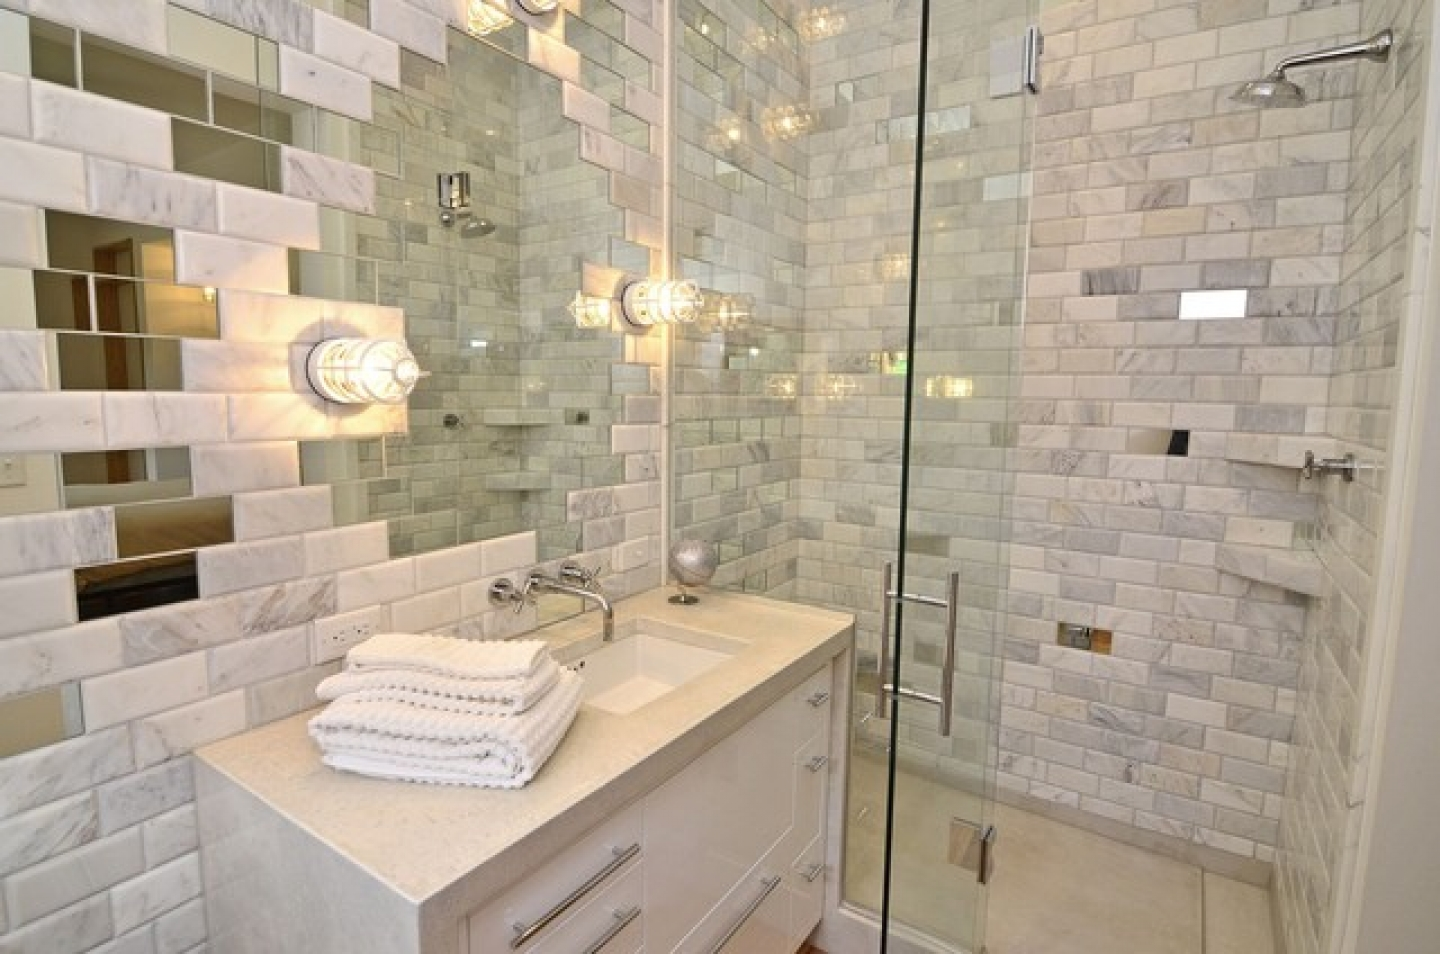 Fabulous Free Download Bathroom Wallpaper Ideas Picture Industry Download Free Architecture Designs Scobabritishbridgeorg